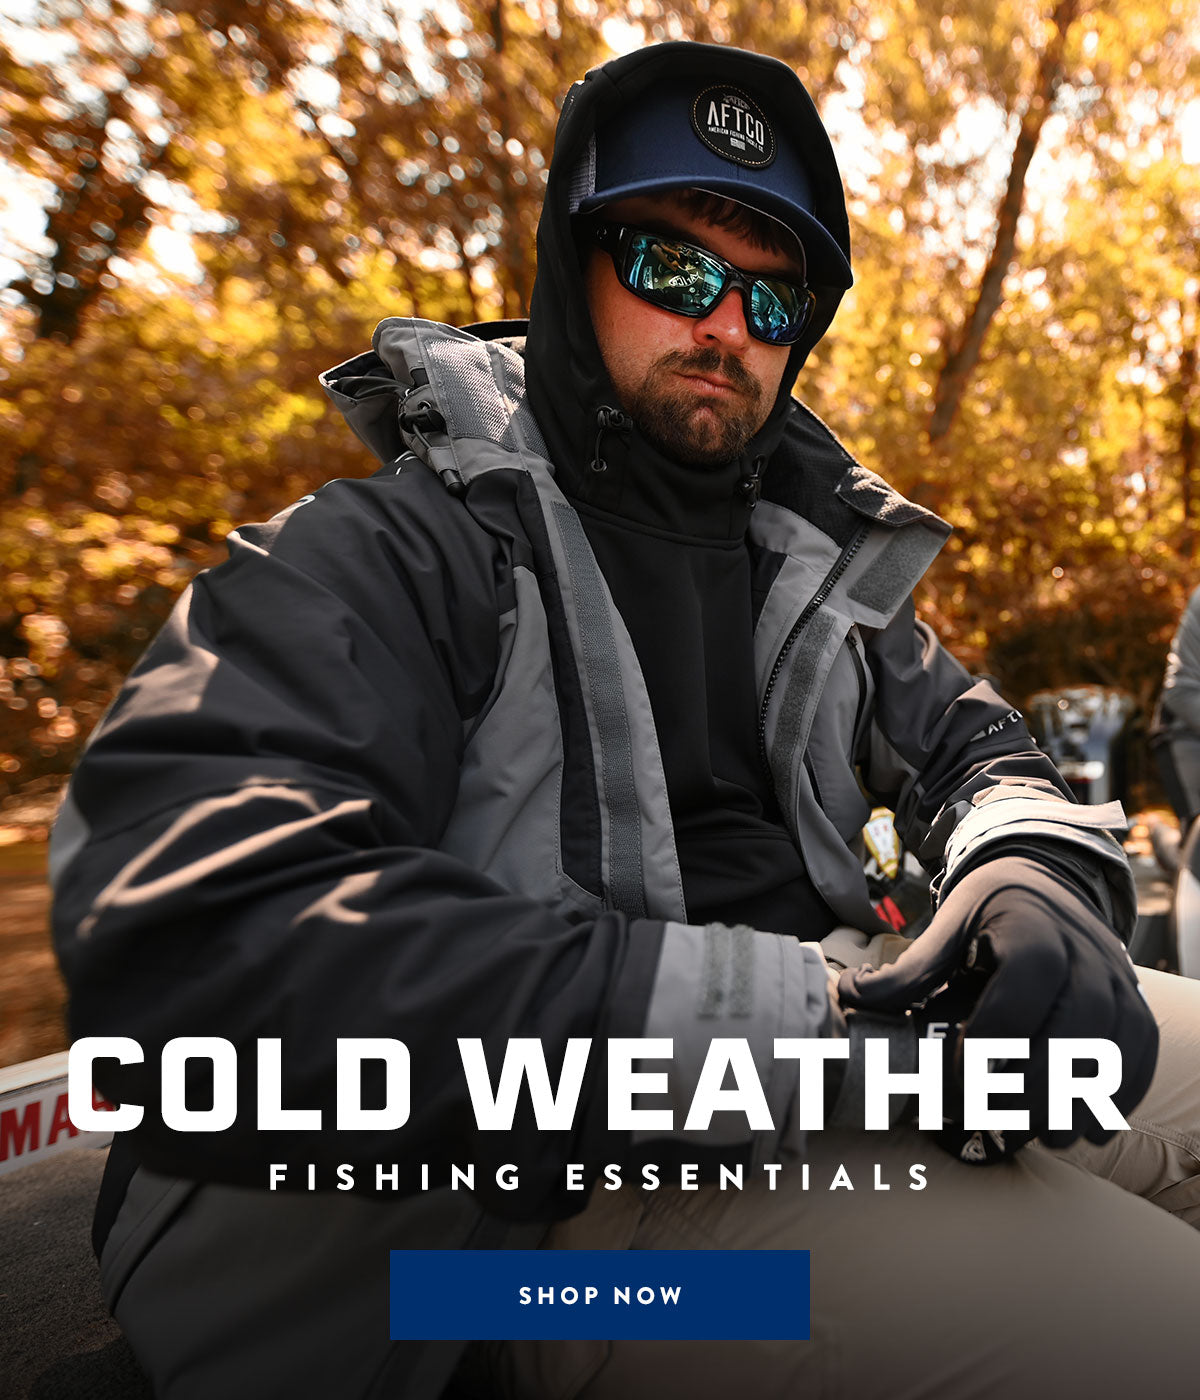 Cold Weather Fishing Essentials